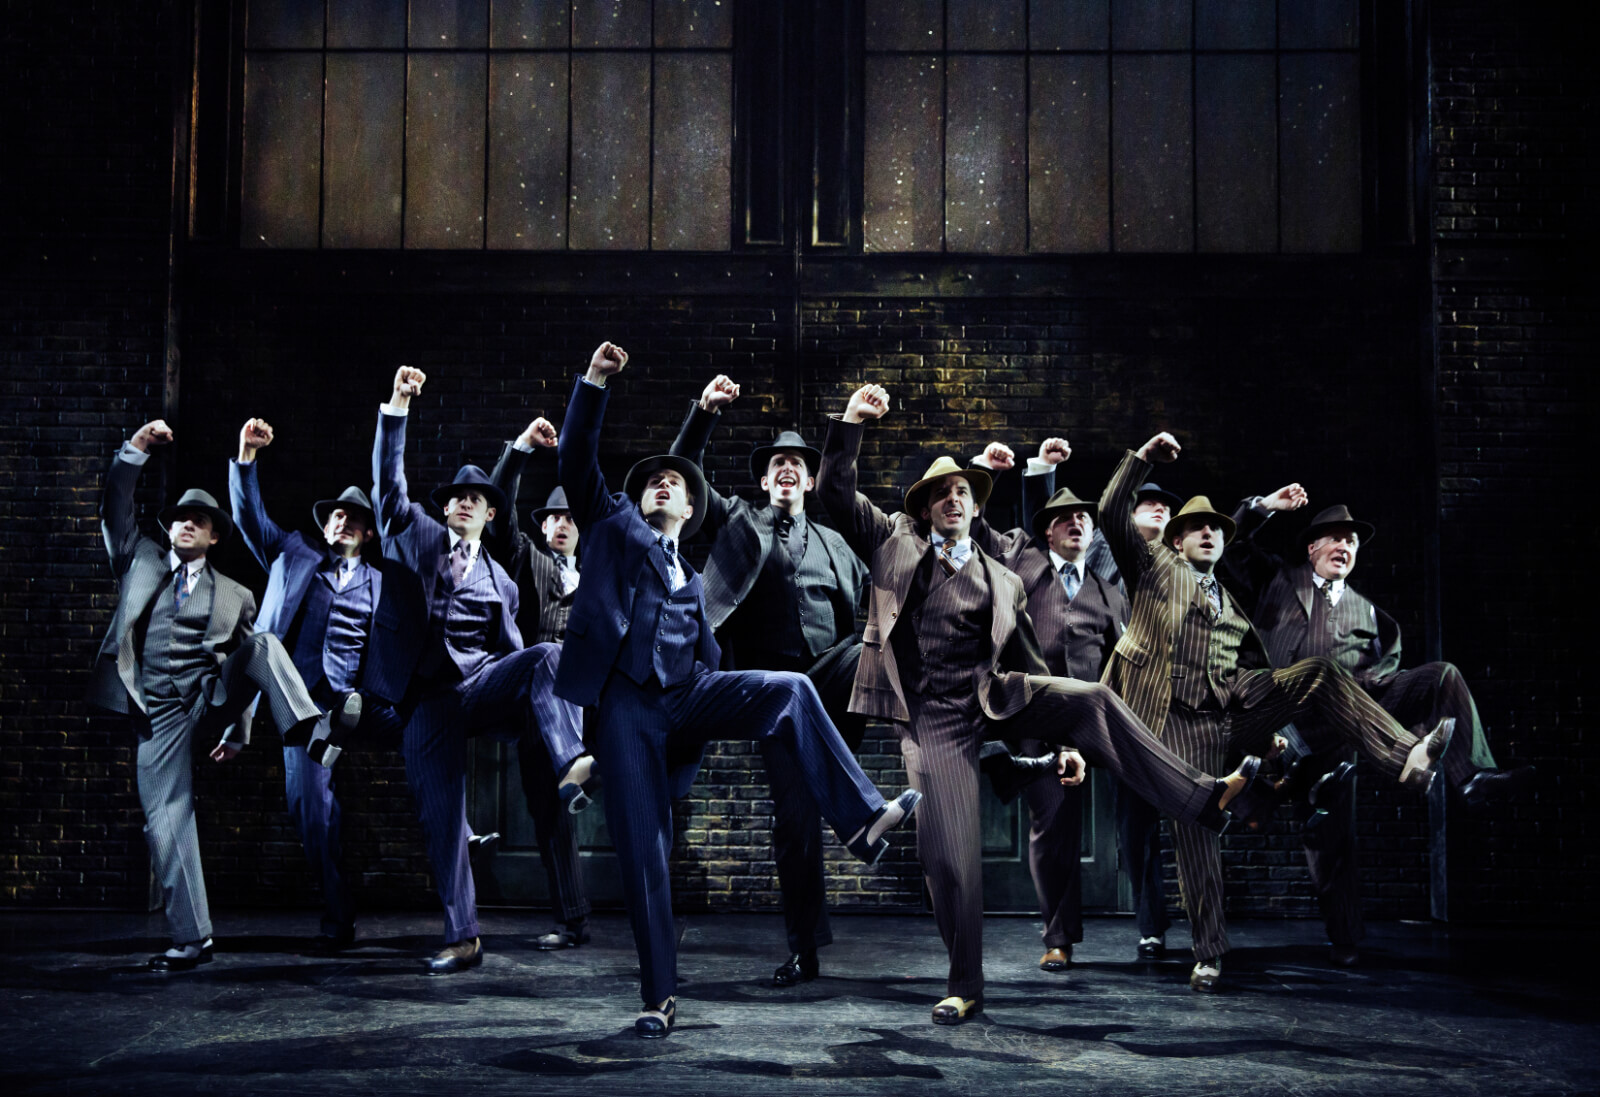 """Cheech (Nick Cordero) and gangsters performing """"Taint' Nobody's Business"""". They are all wearing gangster suits and fedora hats."""